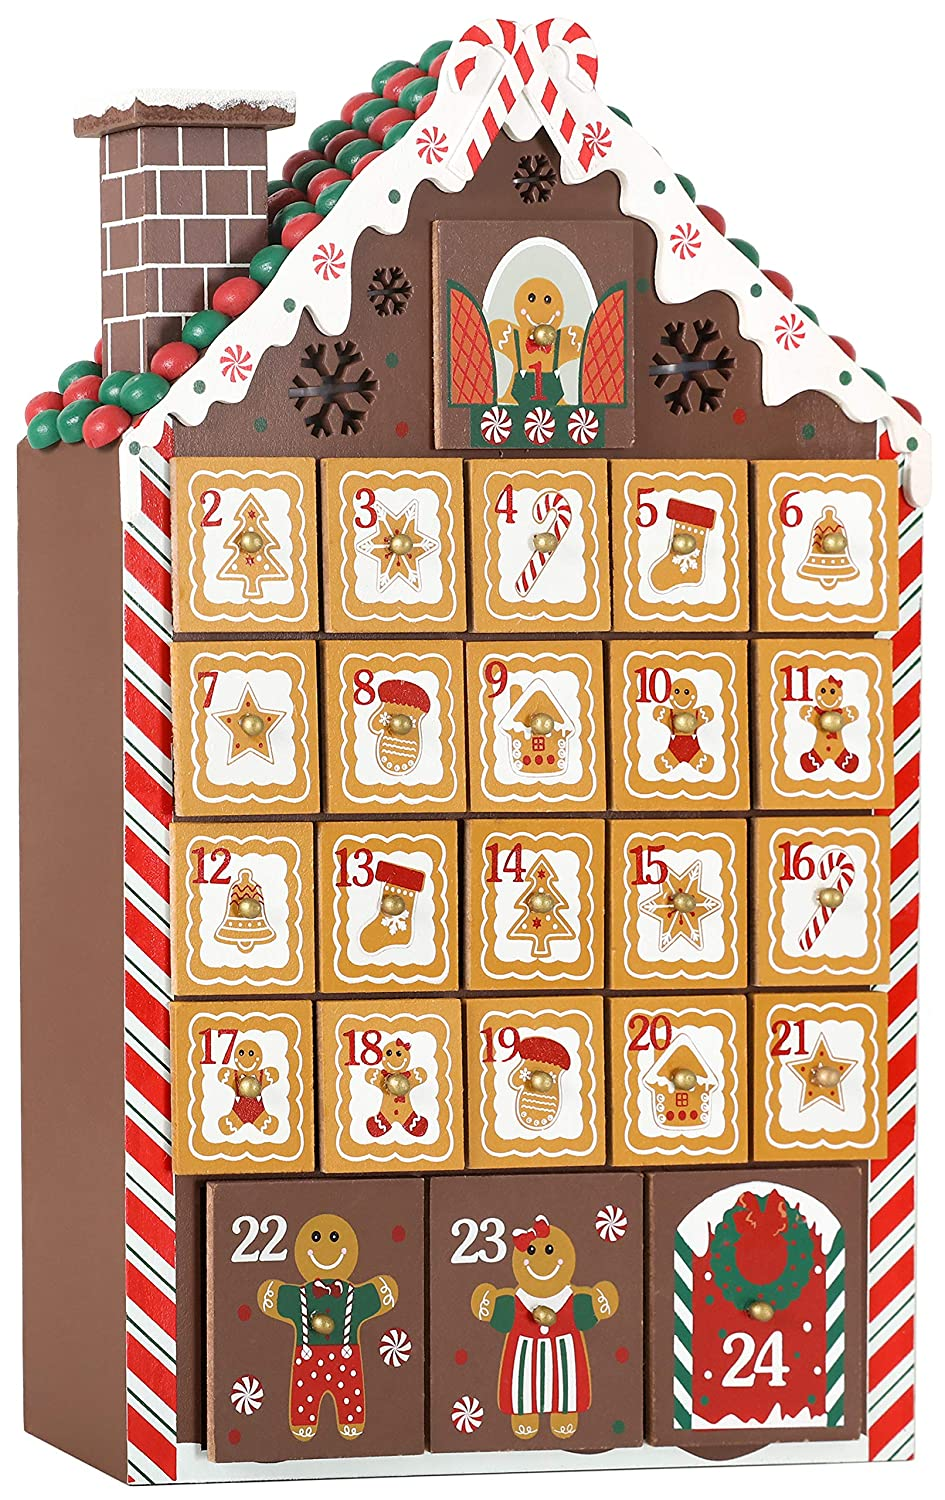 BRUBAKER Advent Calendar - Wooden Gingerbread House with 4 LED Lights - 10.3 x 17.7 x 2.1 inches